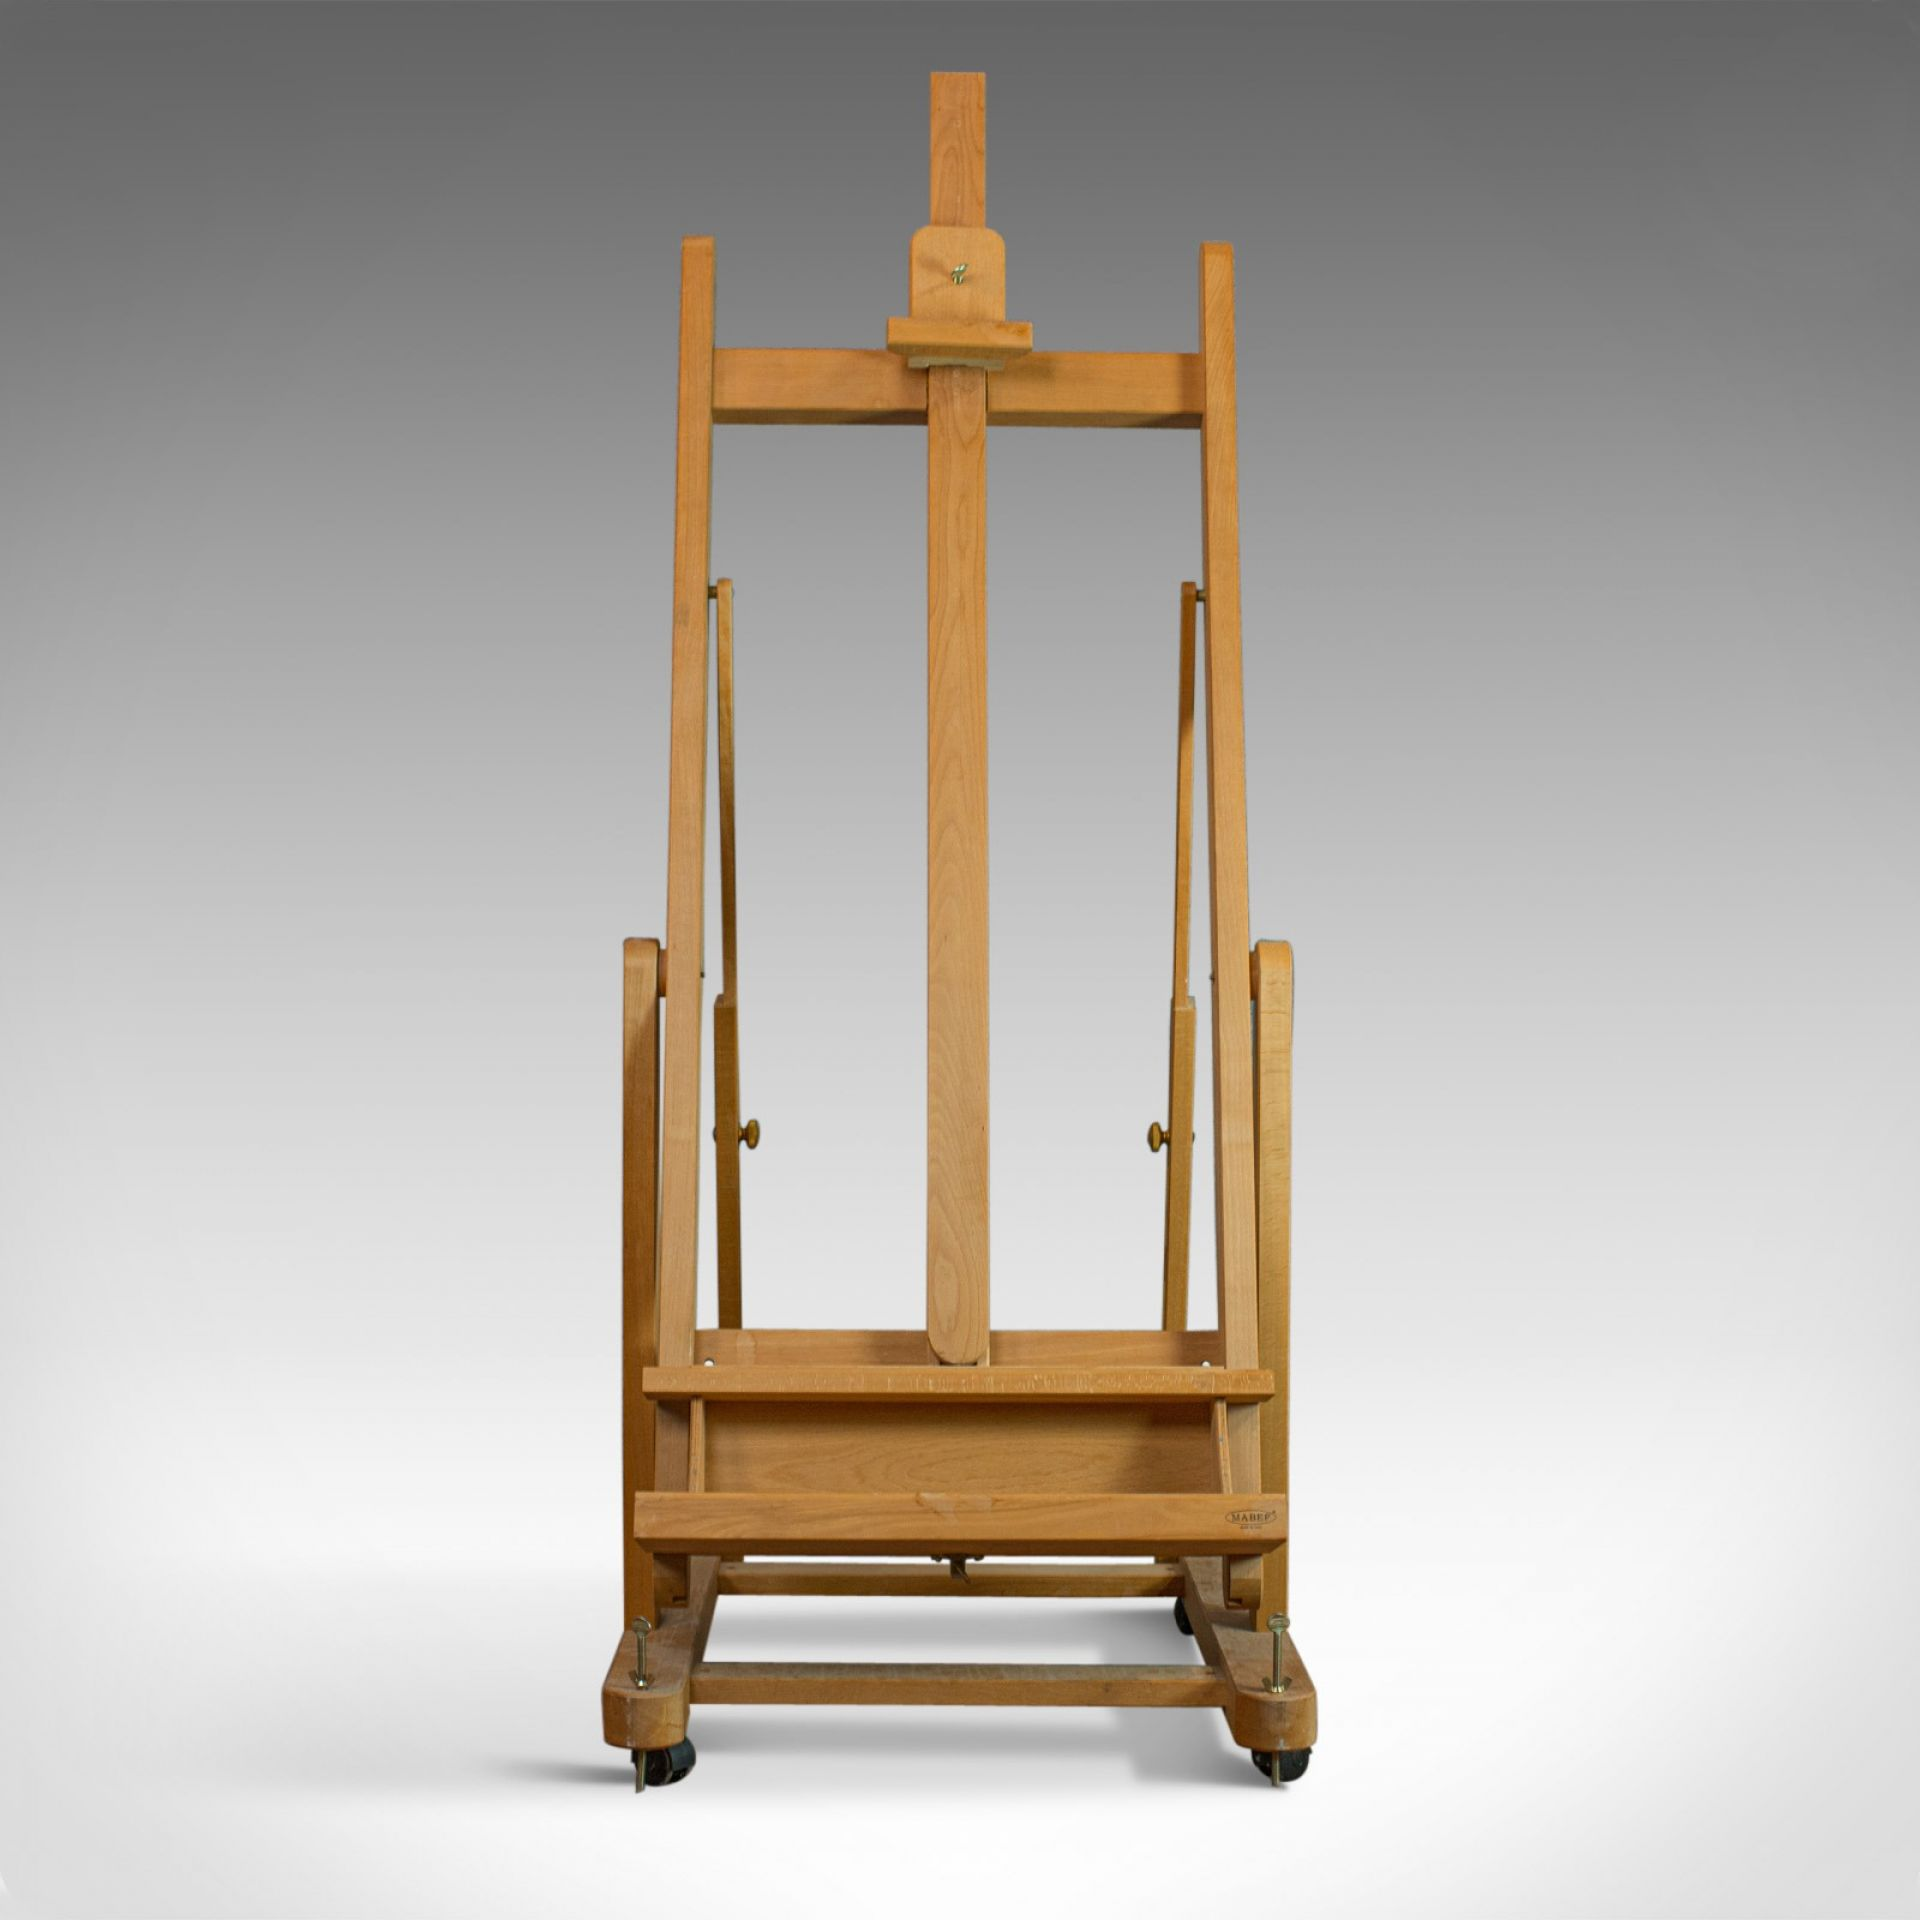 Studio Picture Easel, Adjustable Stand, Beech, Mabef, Italy